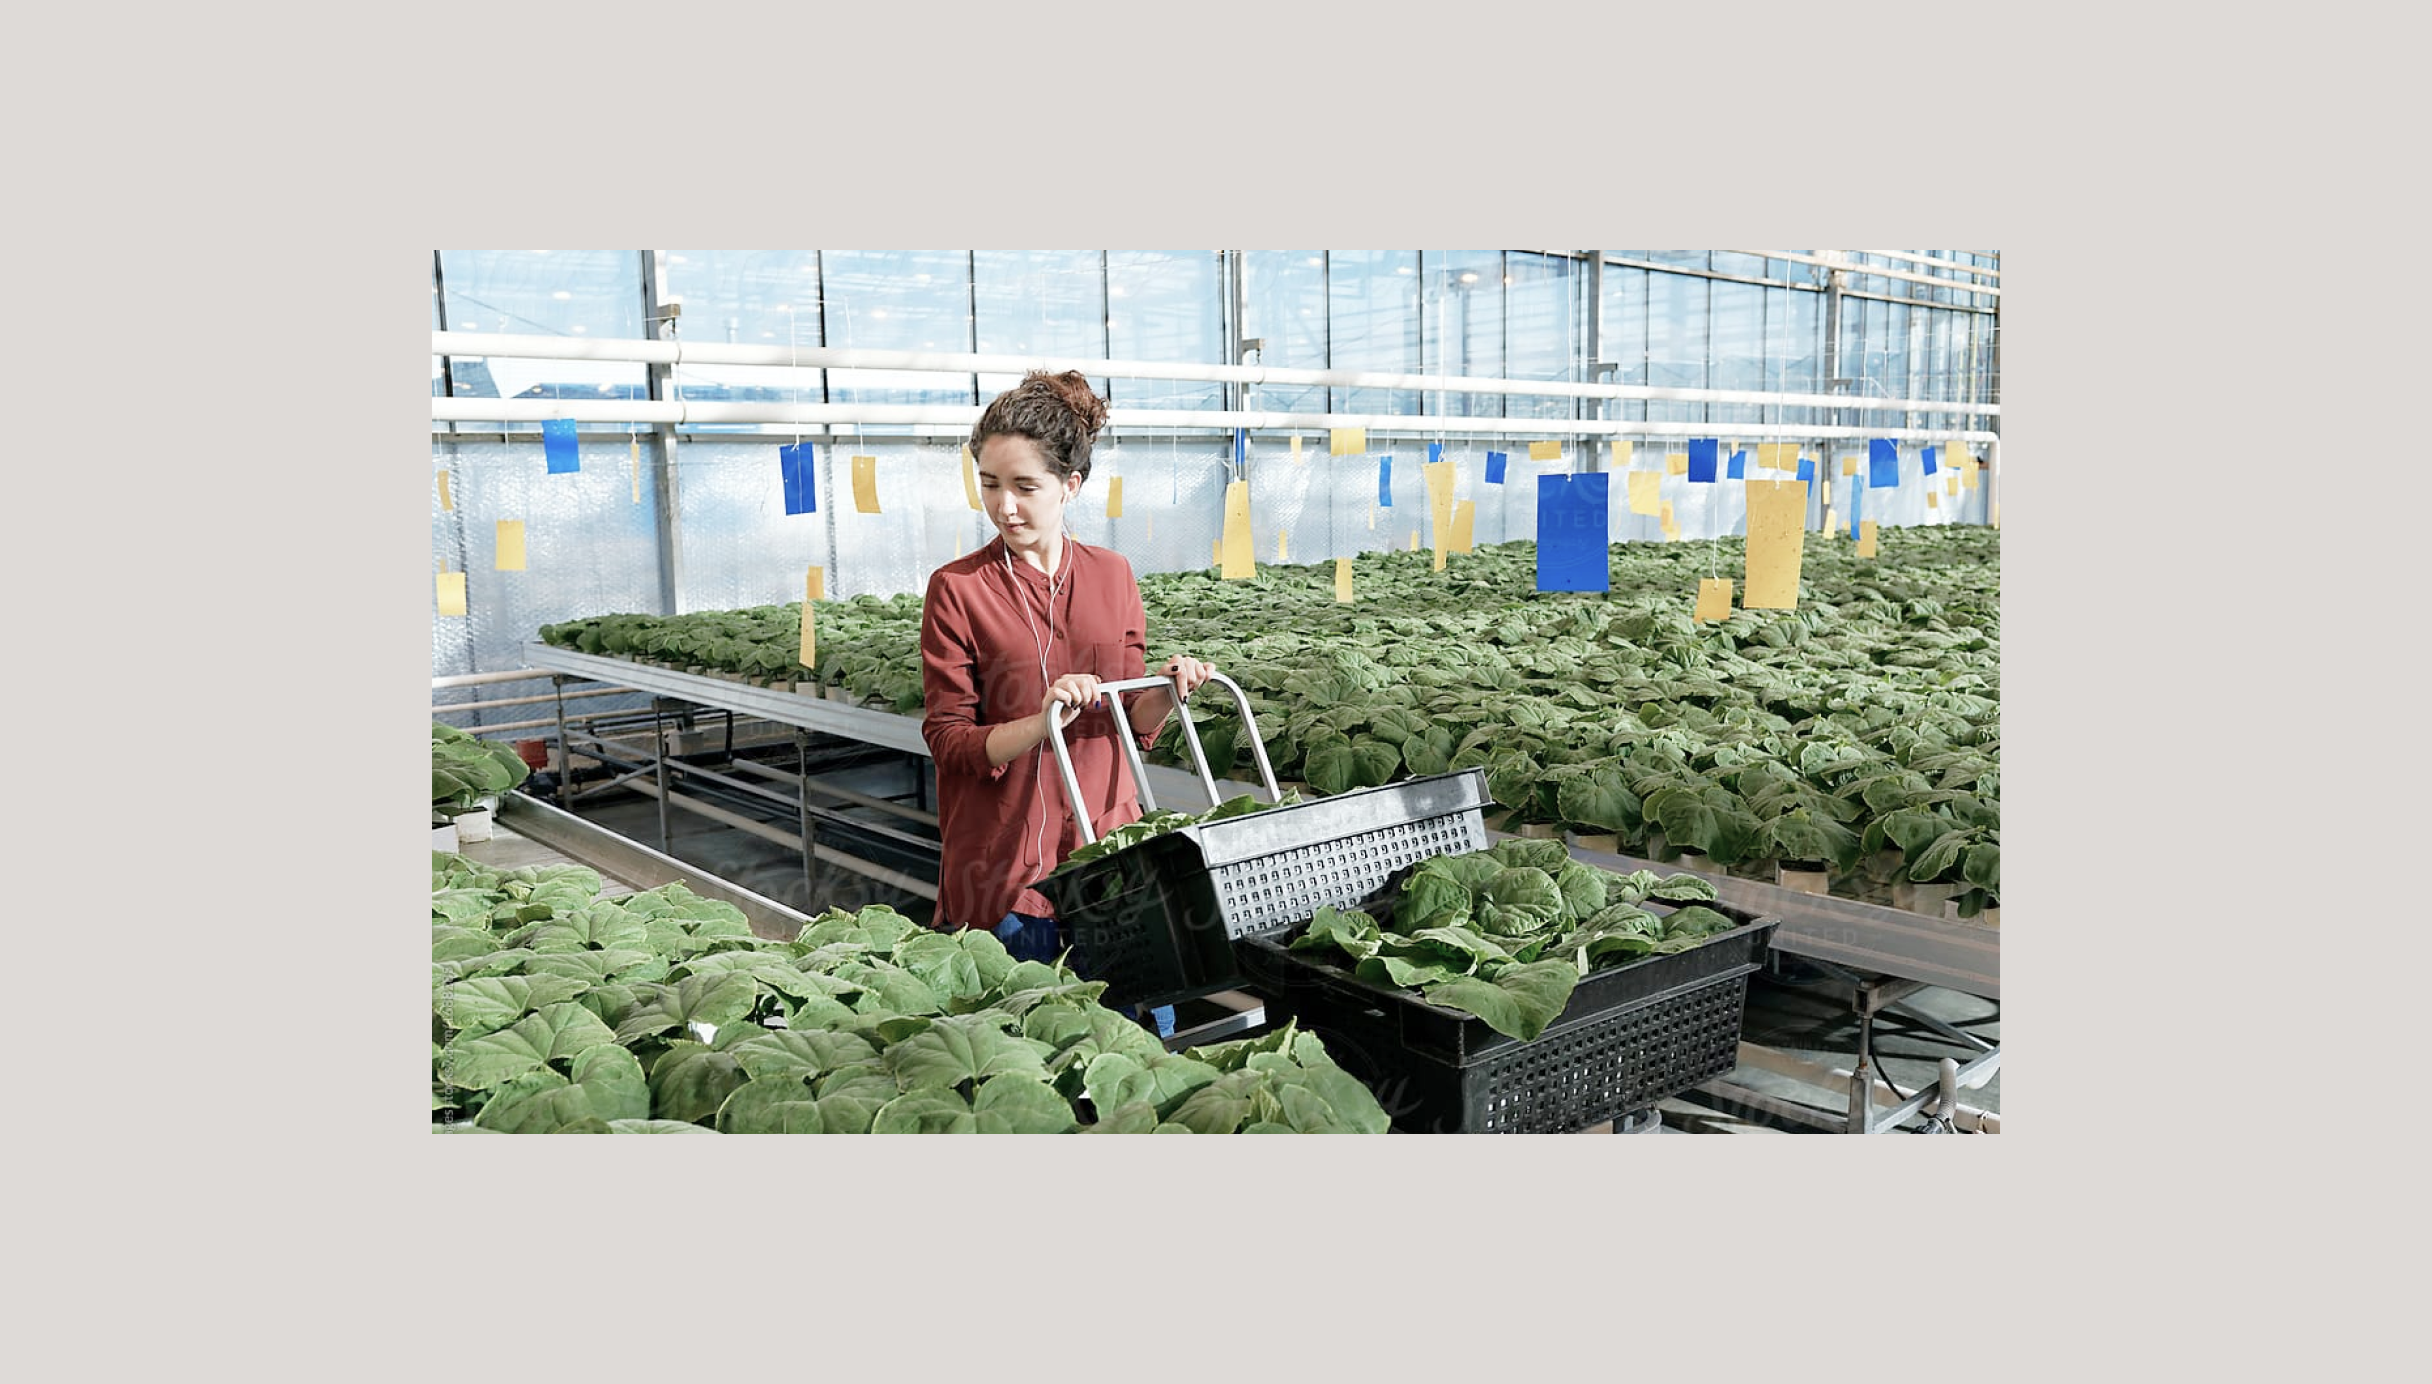 A woman picking fresh produce in a greenhouse